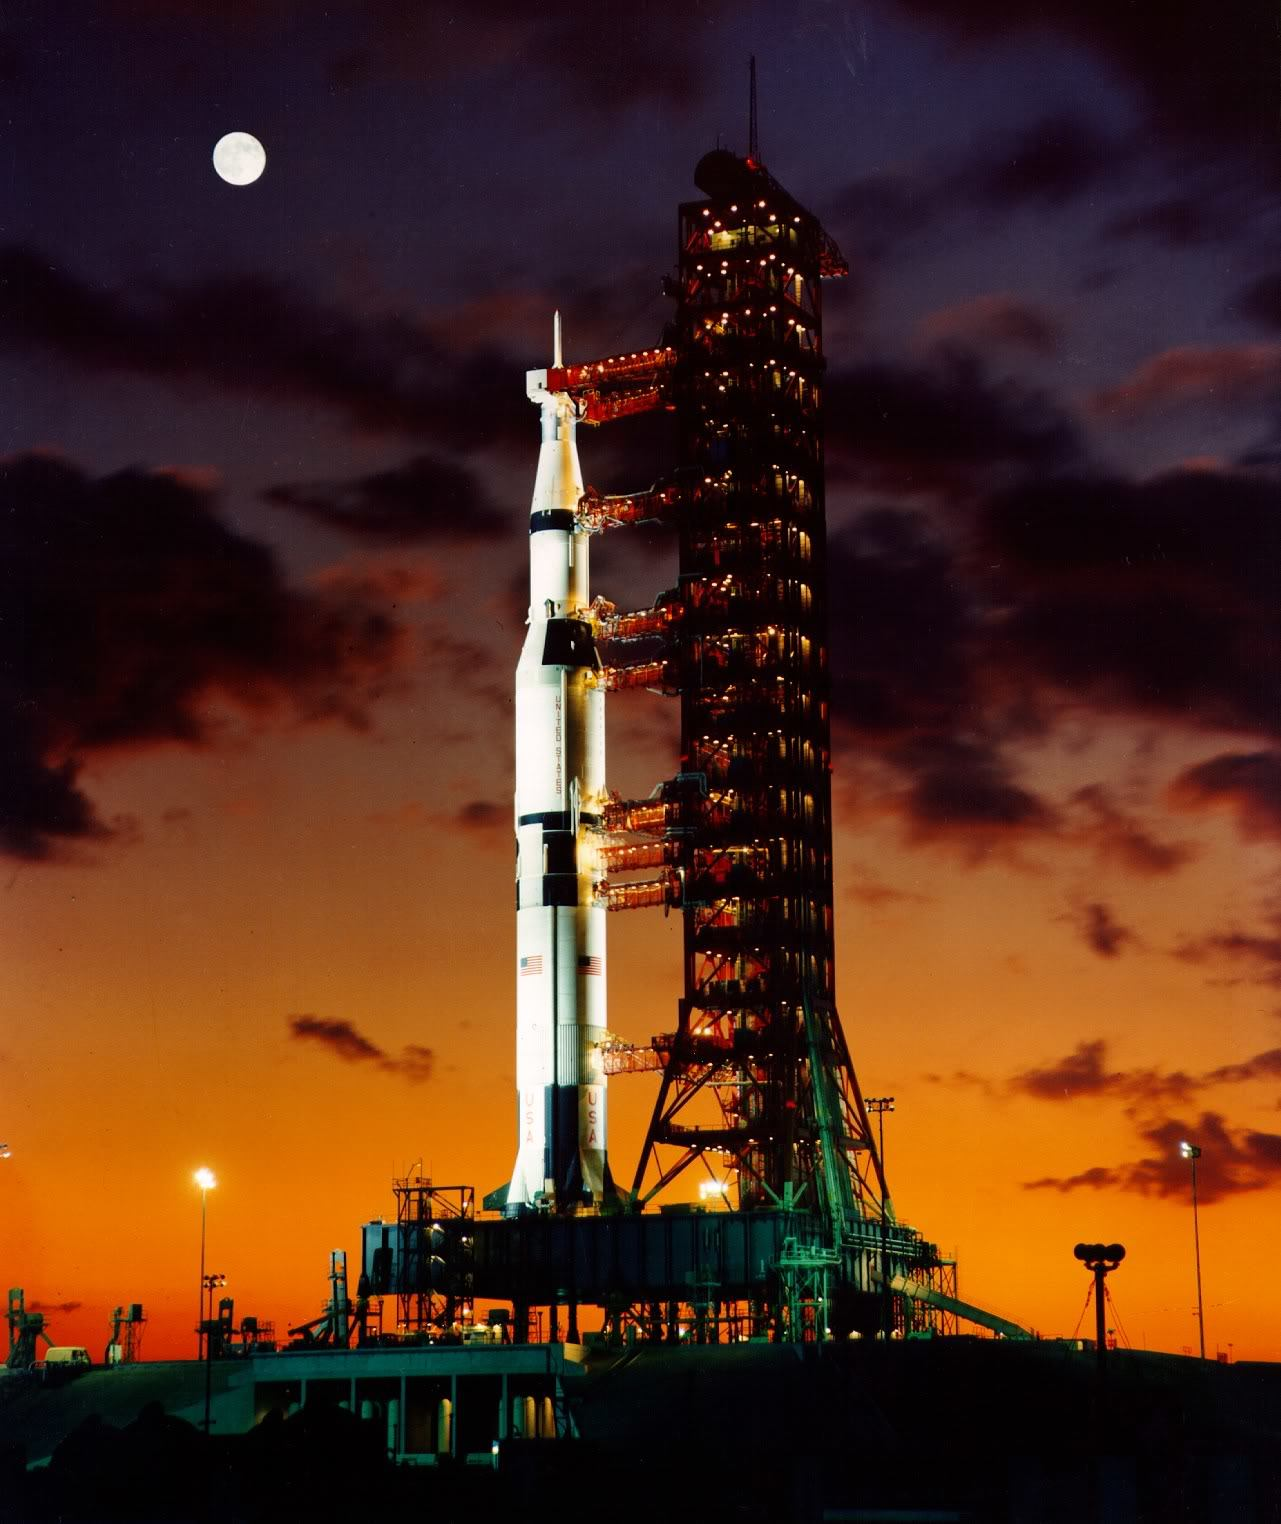 Apollo Carrier rocket launch HD Wallpaper